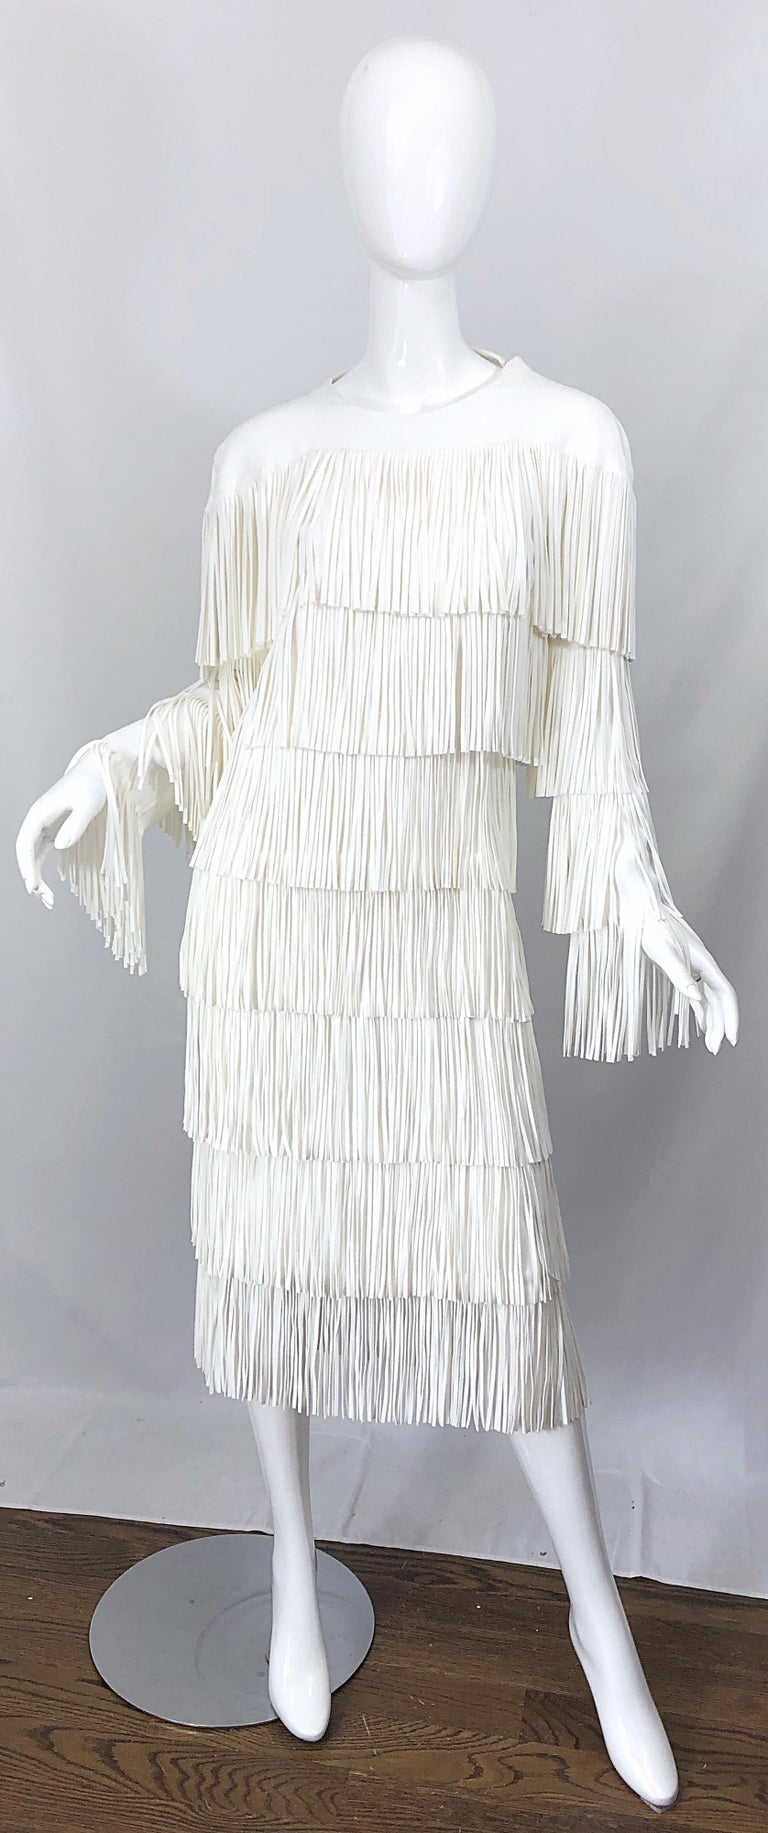 NWT Tom Ford $7,000 Runway Fall 2015 Size 42 / 8 White Open Back Fringe Dress For Sale 12